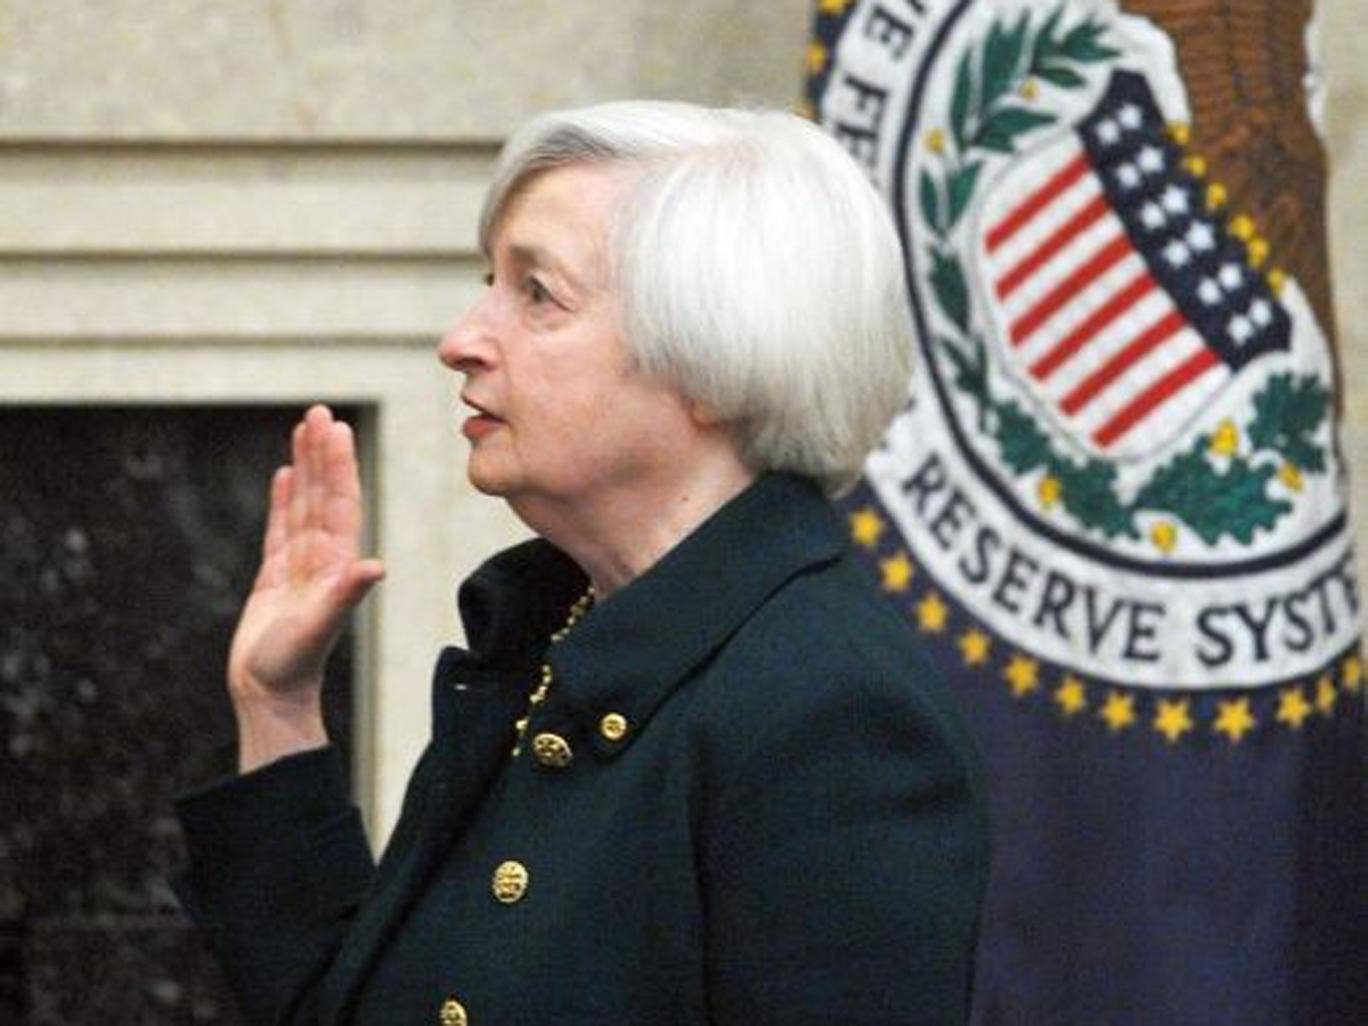 The new head of the US Federal Reserve, Janet Yellen, is sworn into office in Washington, DC yesterday